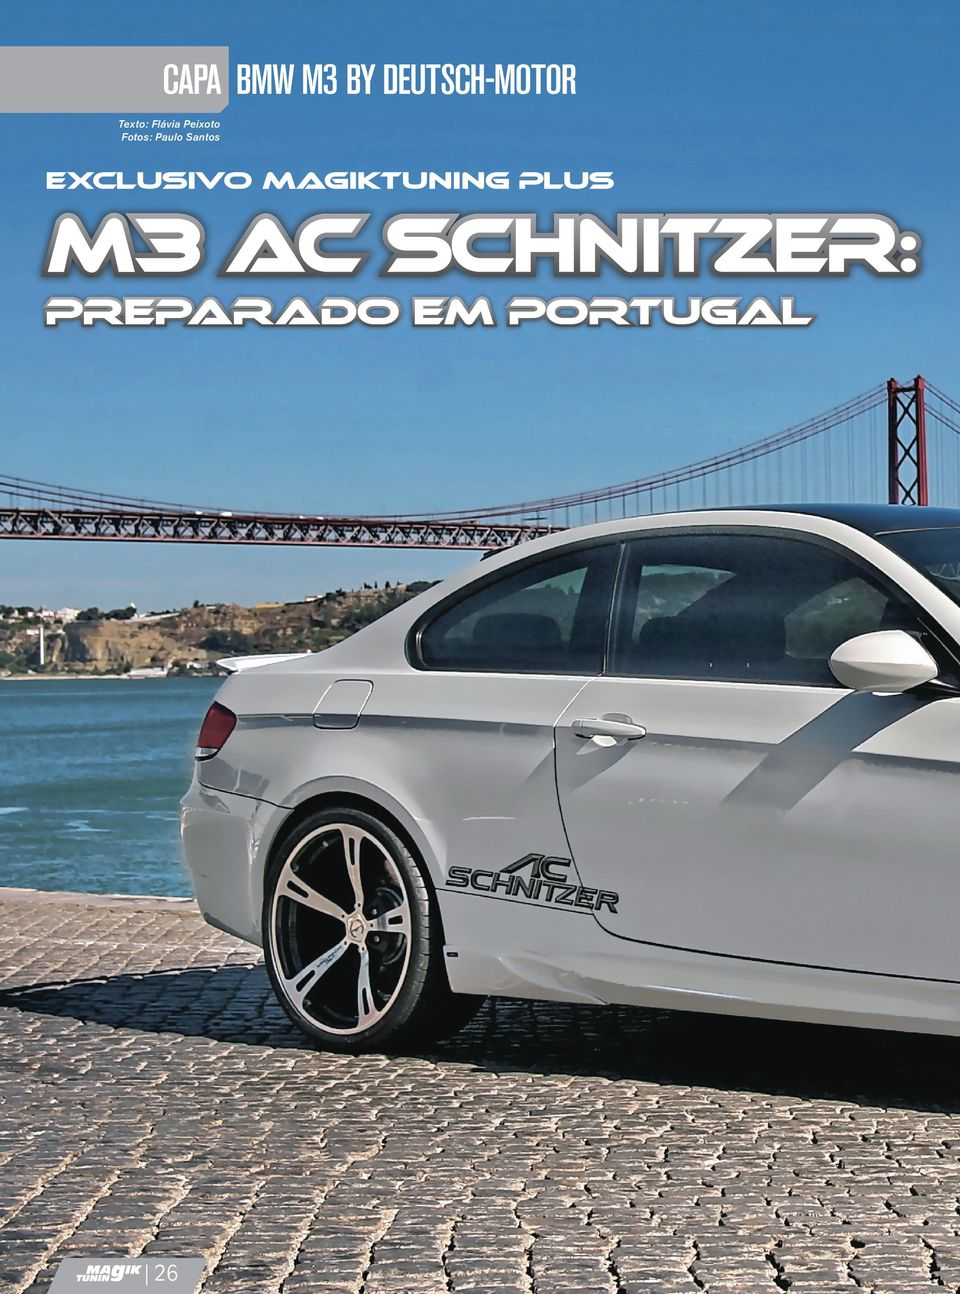 Santos Exclusivo MAGIKTUNING Plus